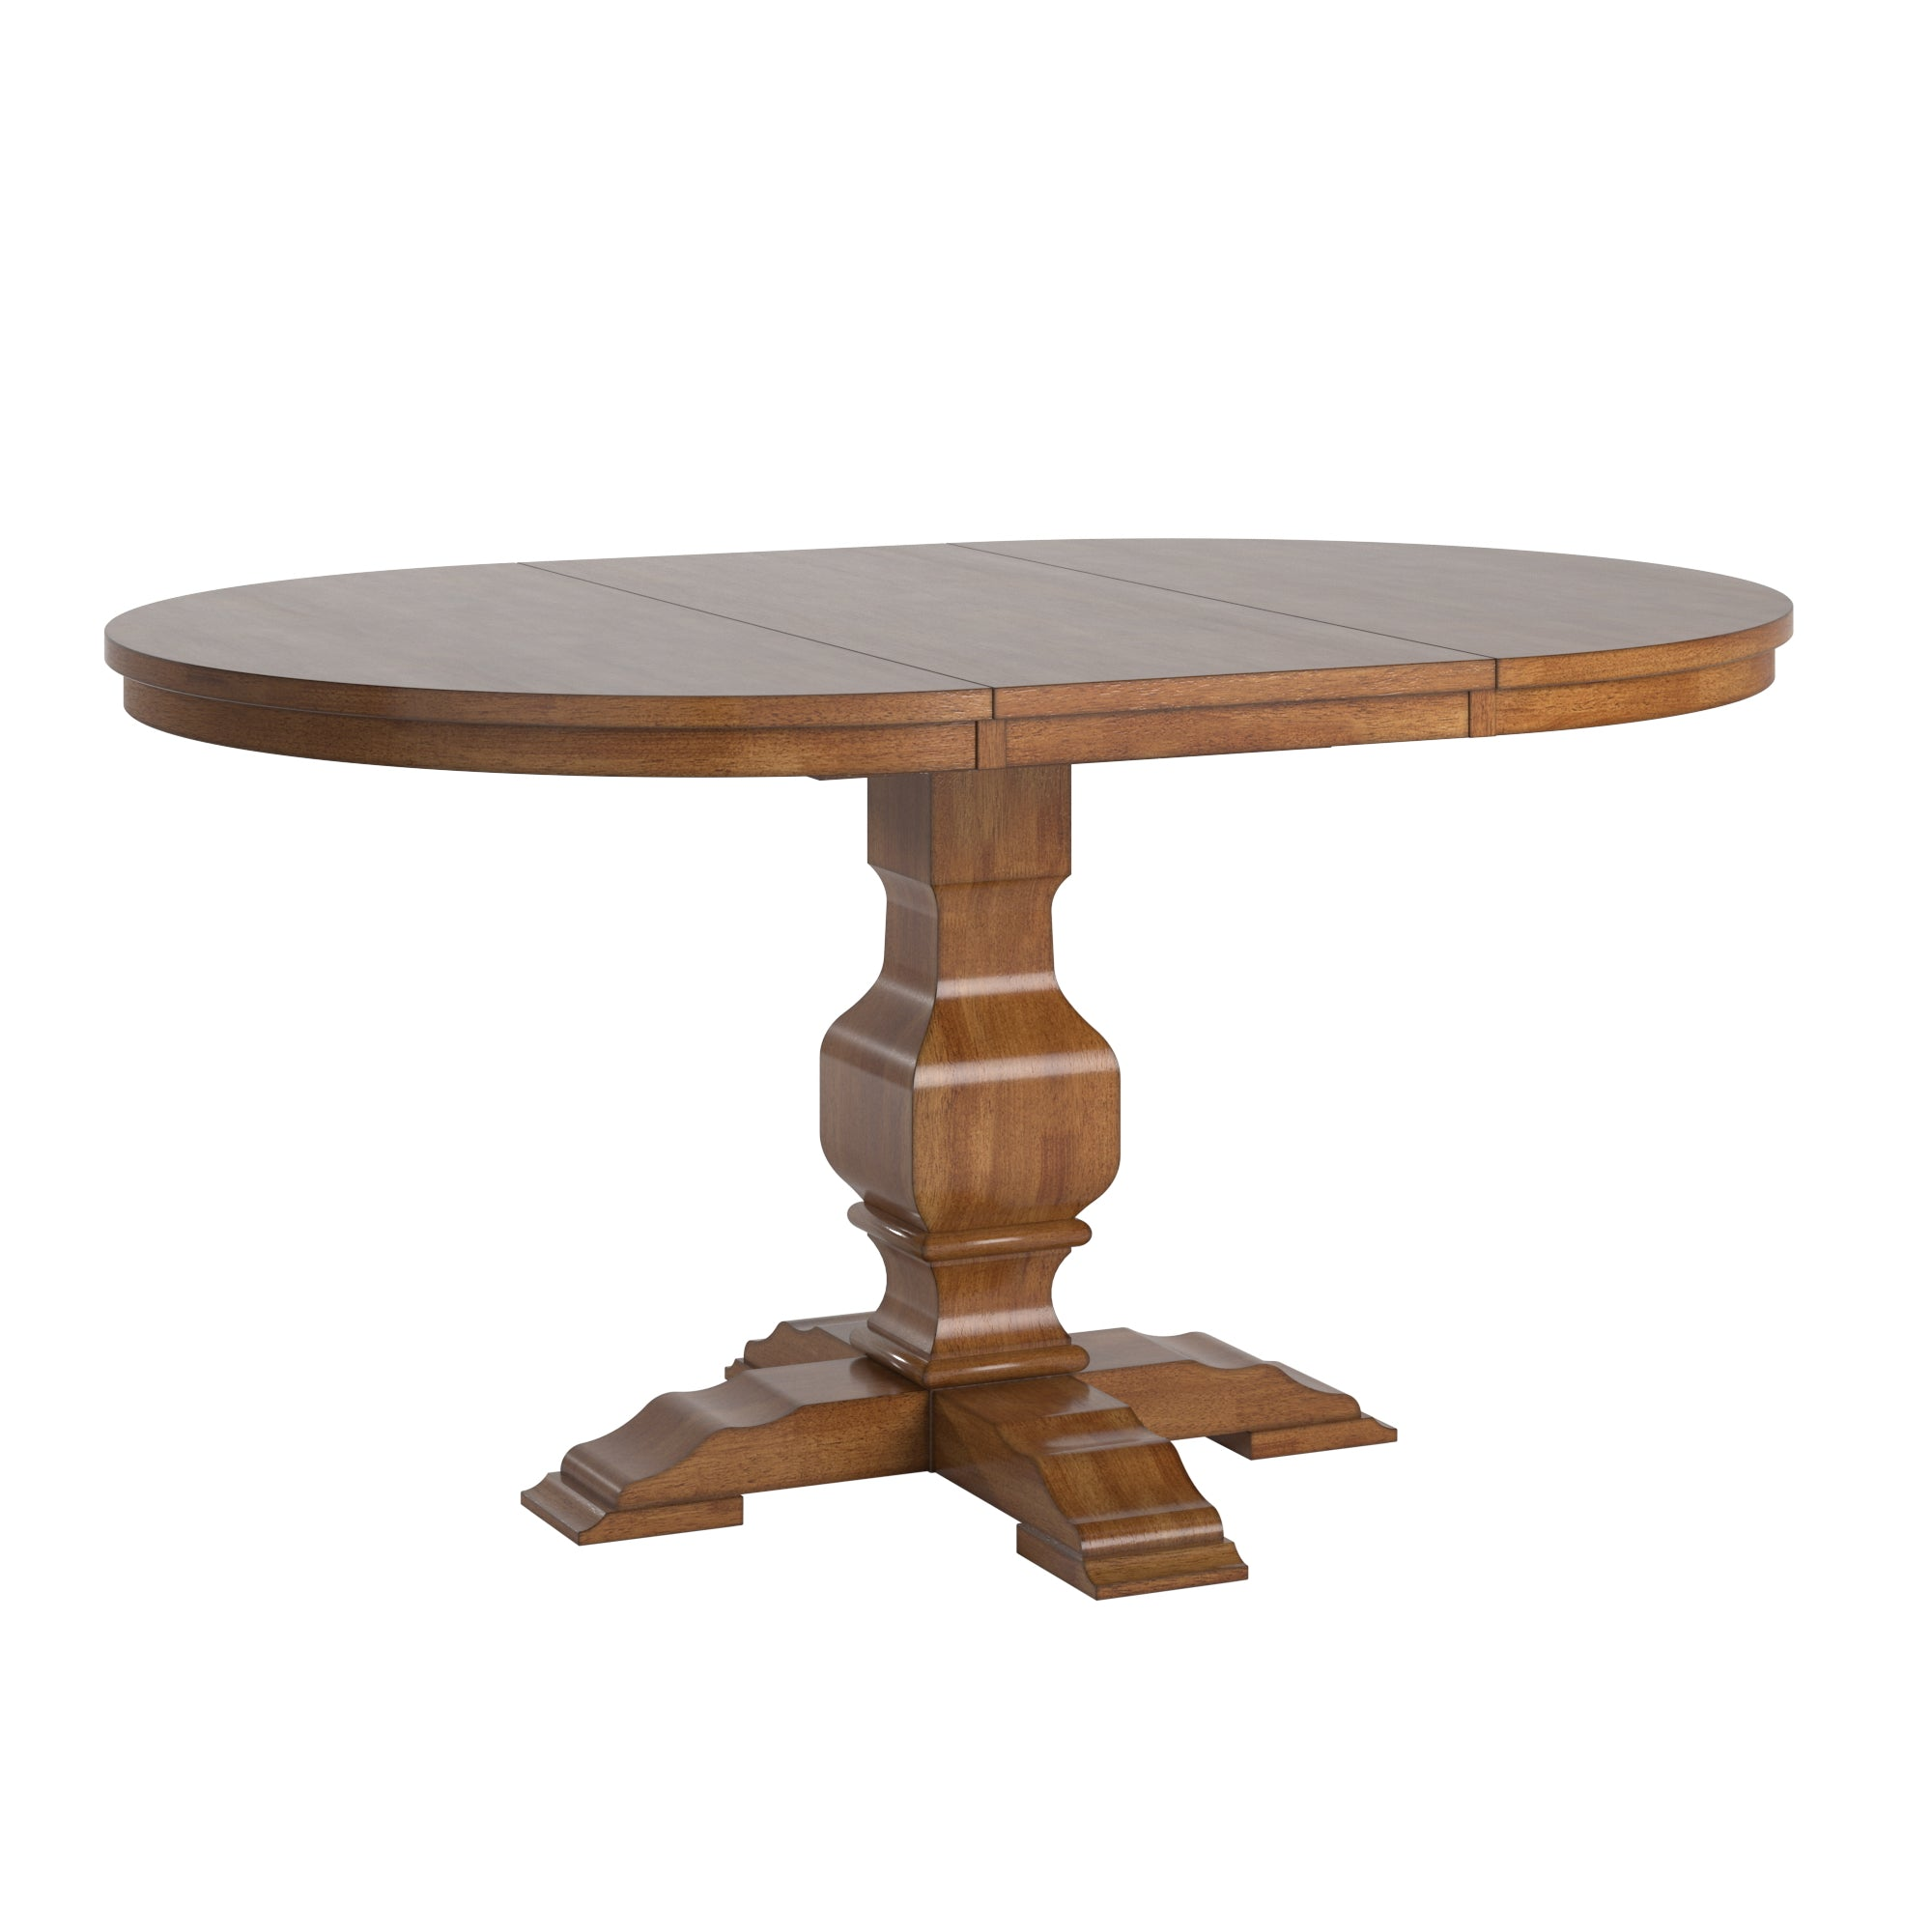 Two-Tone Oval Solid Wood Top Extending Dining Table - Oak Top with Oak Base